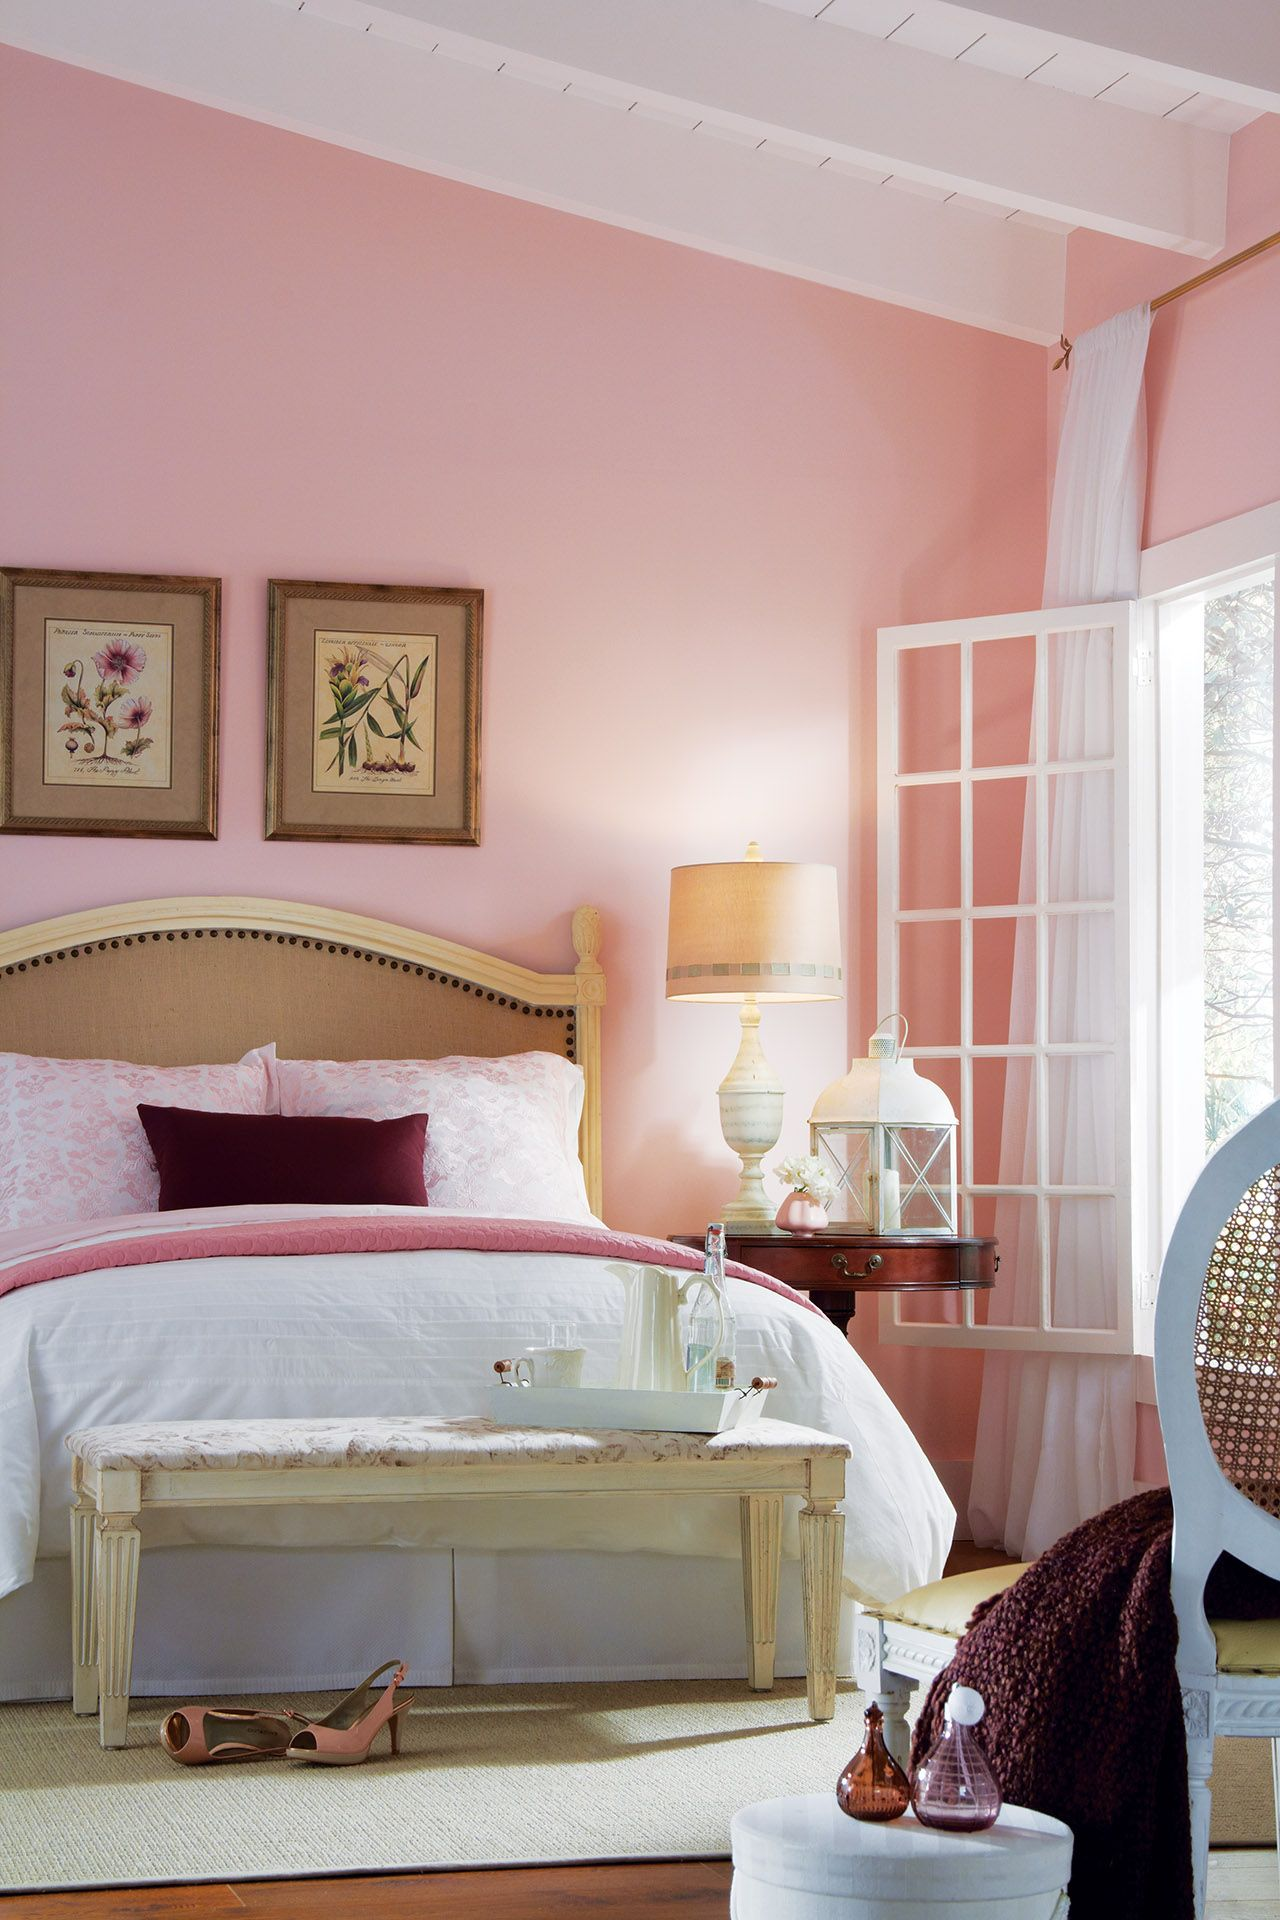 Walls: First Blush 06B 2 Trim And Ceiling: Graceful Swan 04D 1